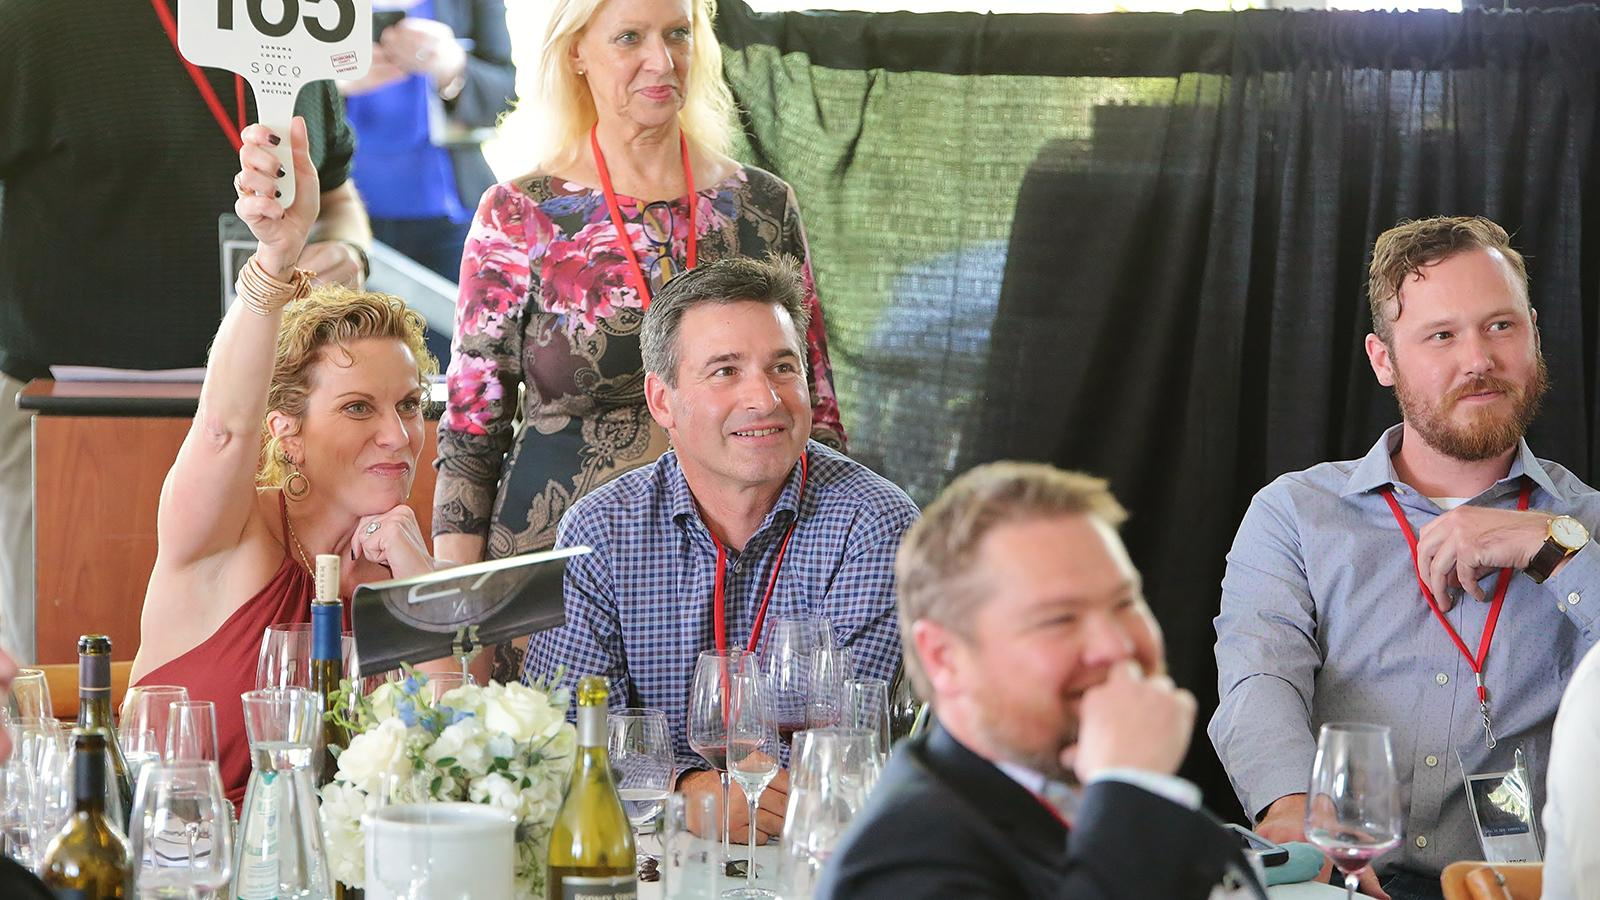 Wendy Heilmann, director of wine and spirits for Pebble Beach Resorts, bids on a lot at the Sonoma Barrel Auction.